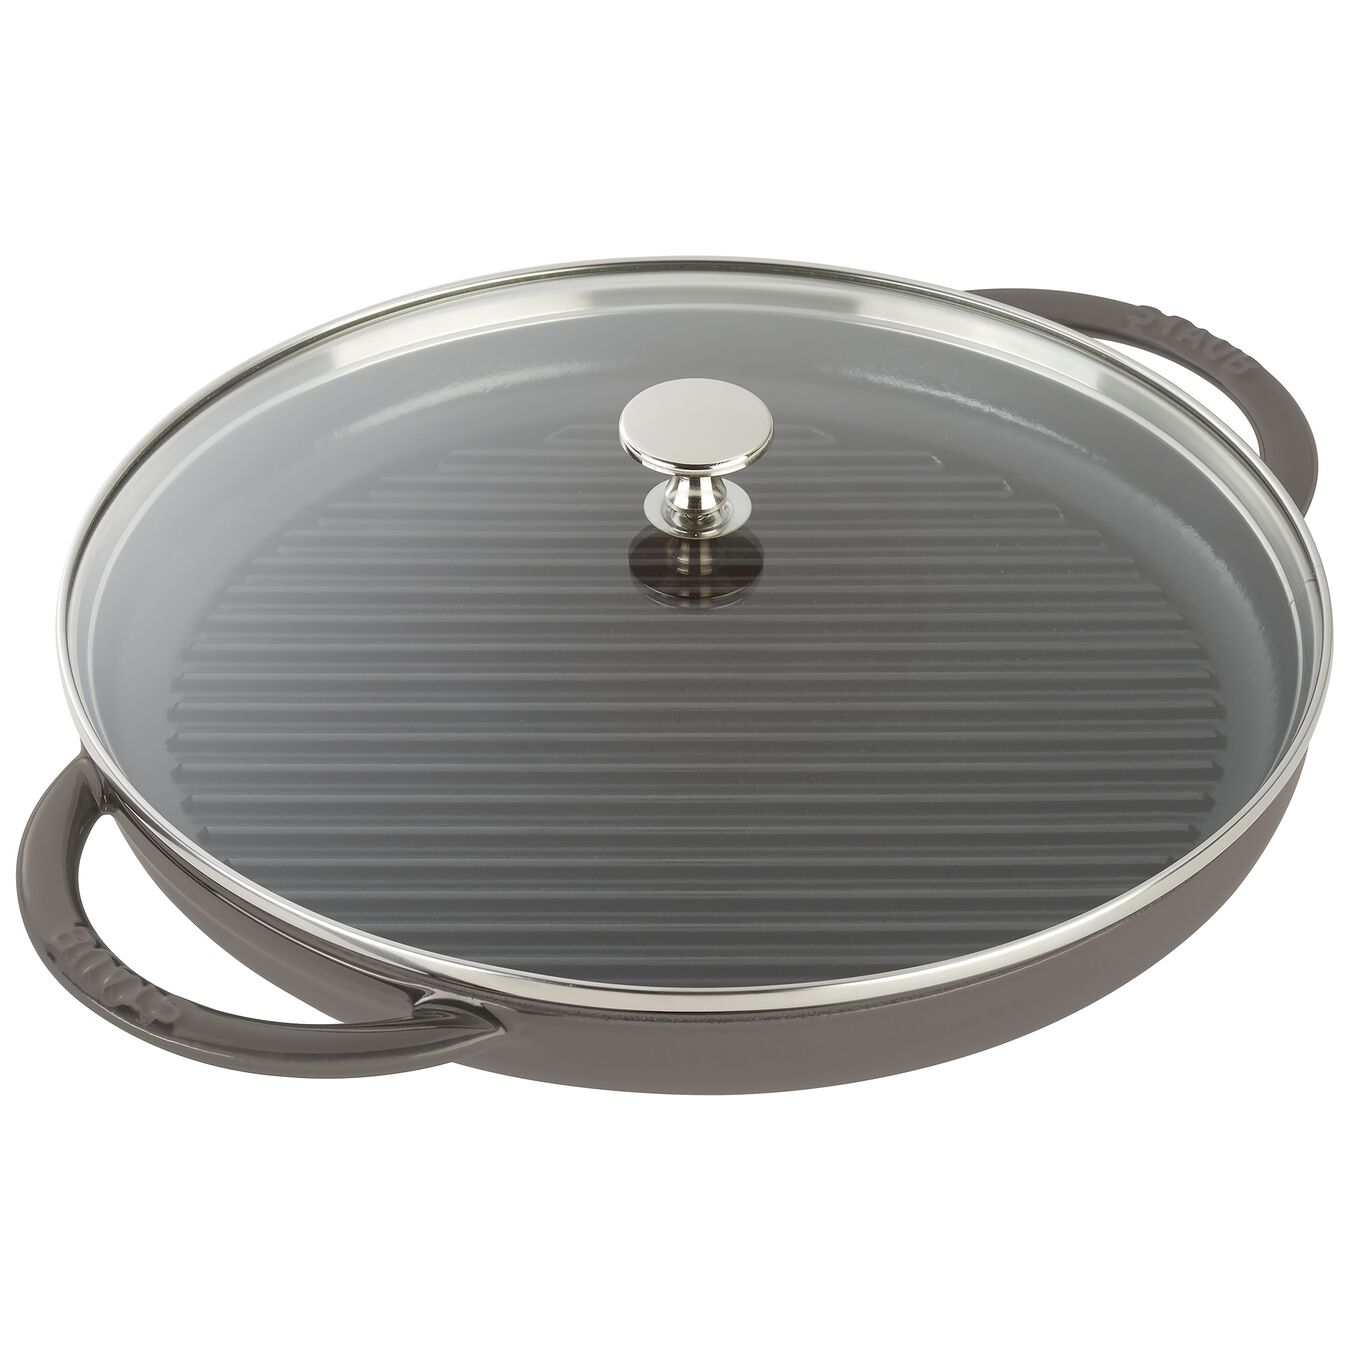 round, Grill pan with glass lid, graphite grey,,large 1